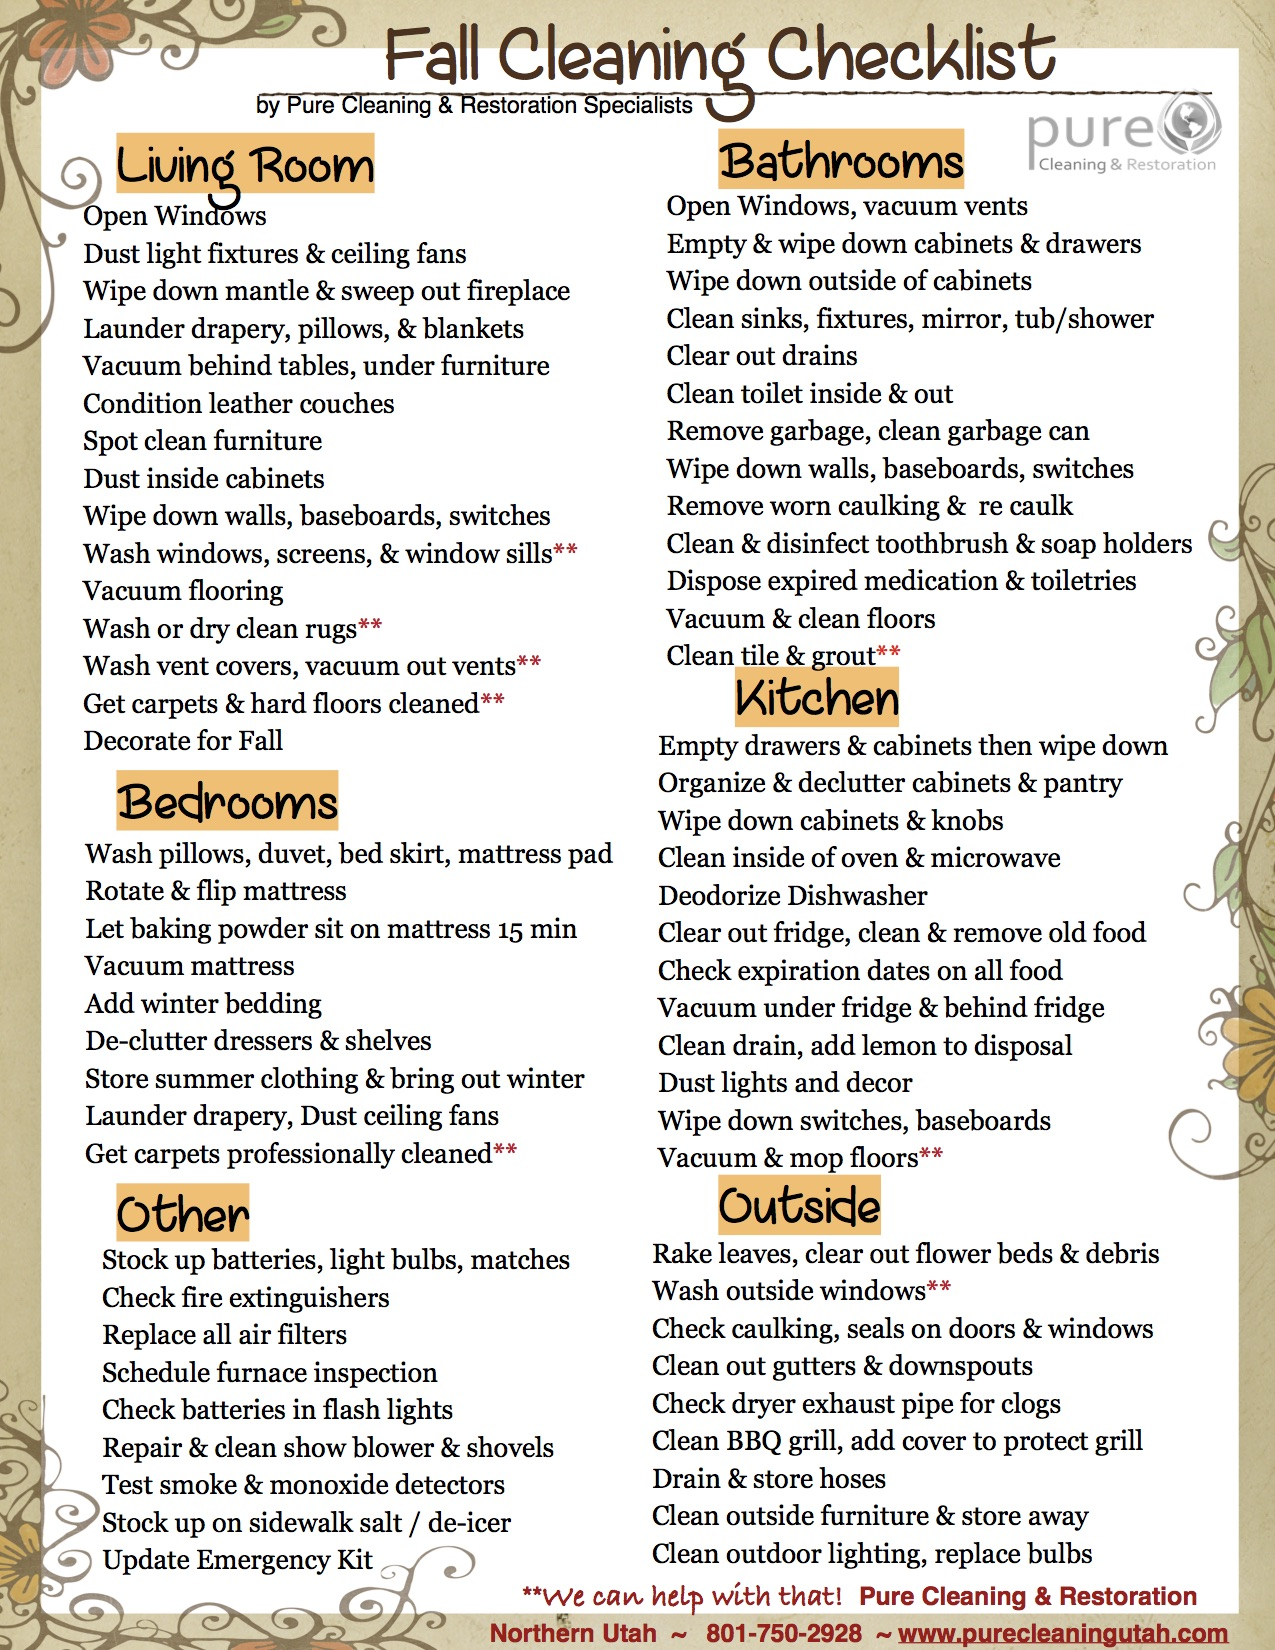 Fall Cleaning Checklist Utah